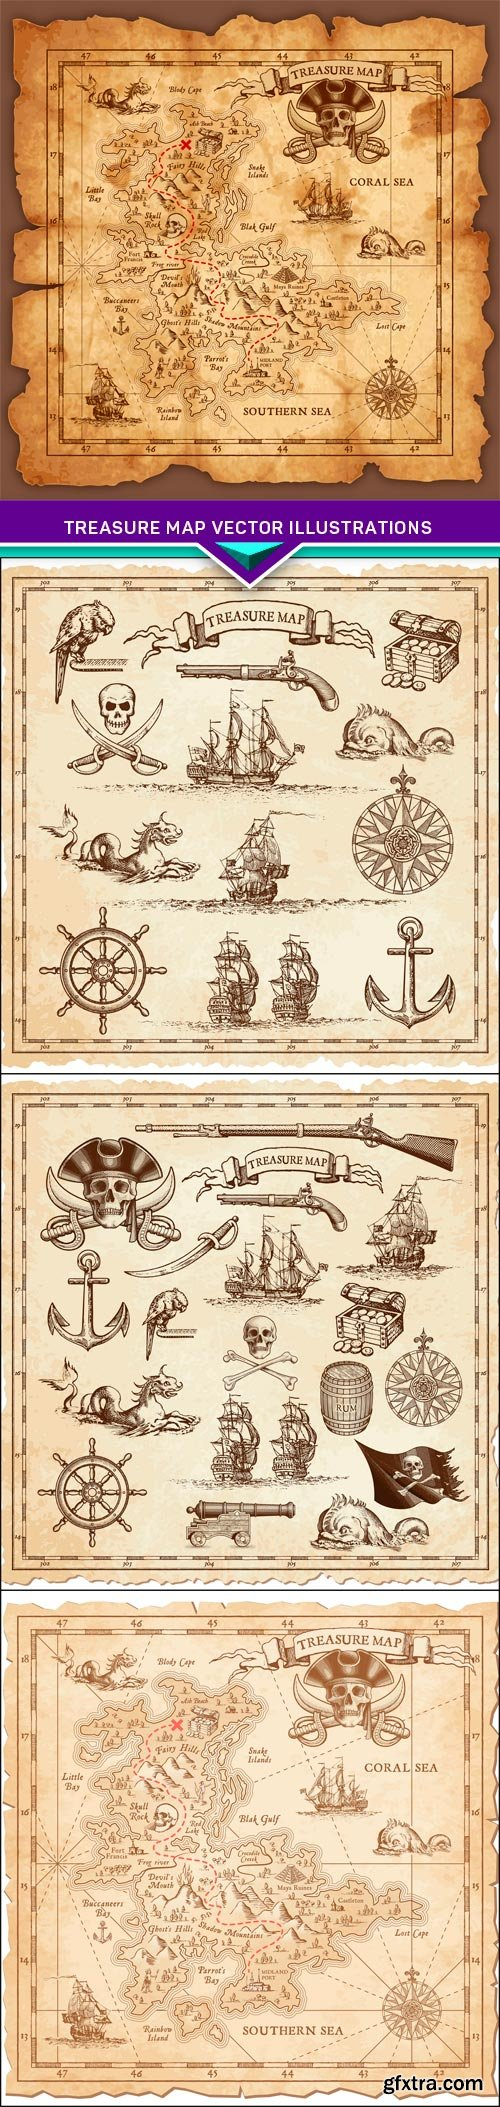 Treasure map vector illustrations 4X EPS